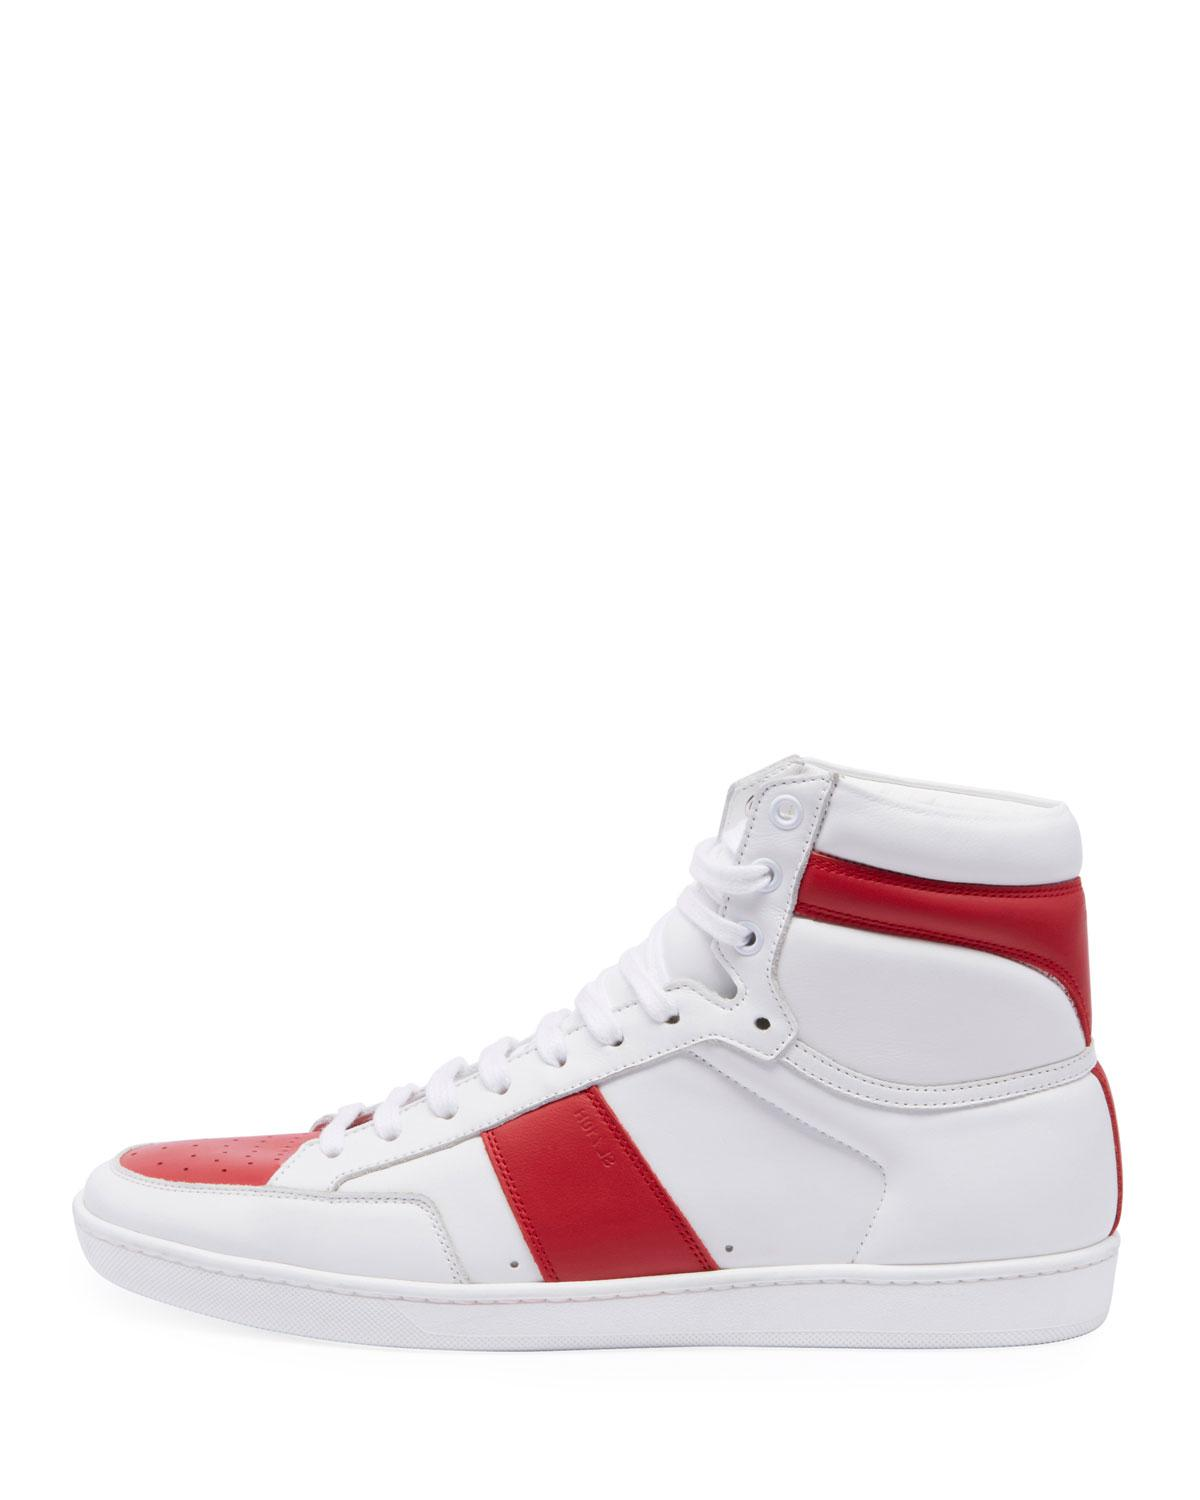 97e8fb3adf63c Lyst - Saint Laurent Sl 10h Leather Sneakers in White for Men - Save  25.157232704402517%